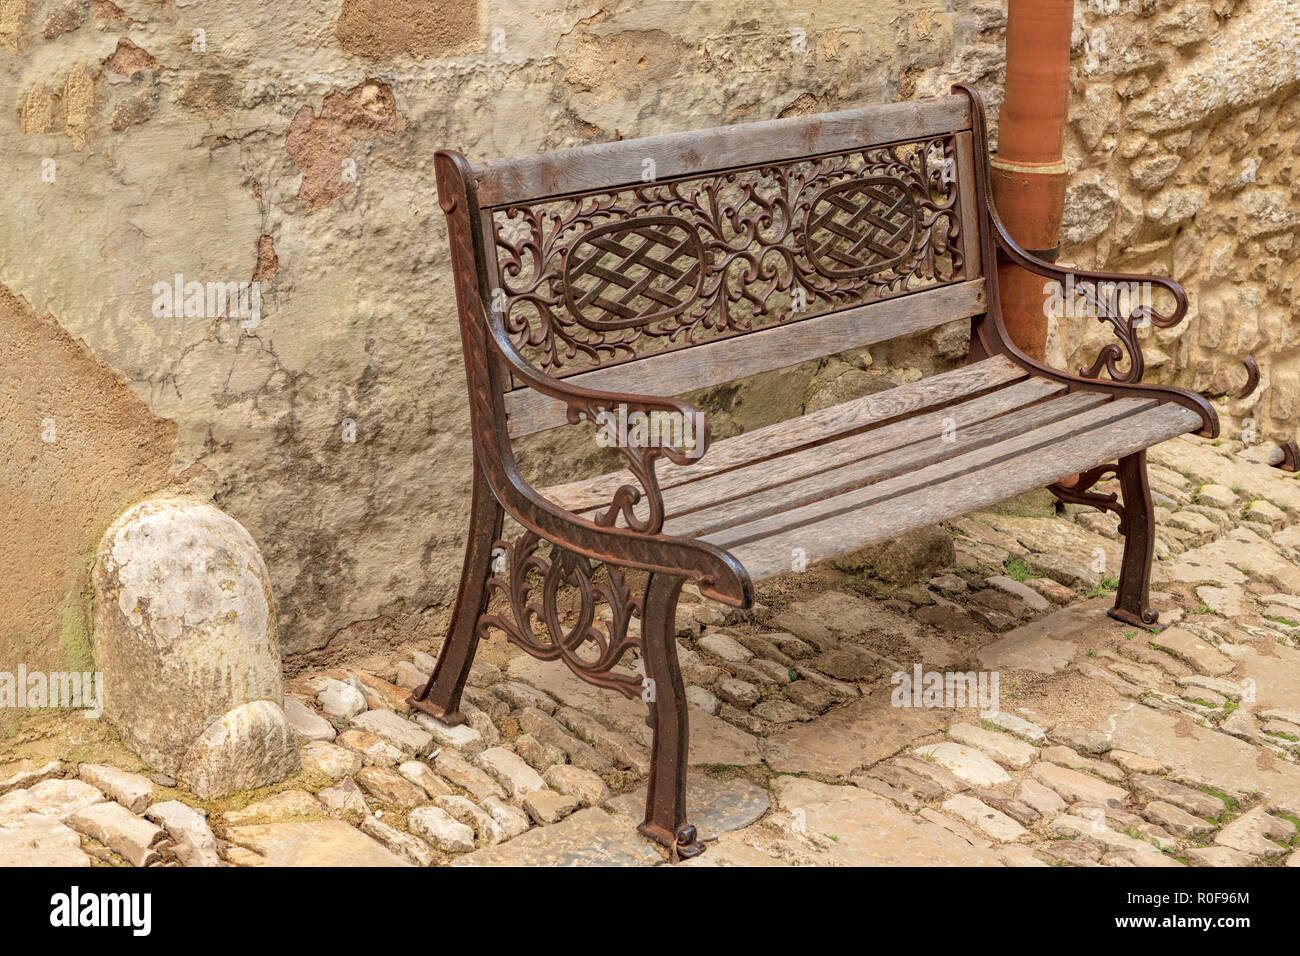 Surprising Still Life Of An Old Wooden Bench With Wrought Iron Design Machost Co Dining Chair Design Ideas Machostcouk